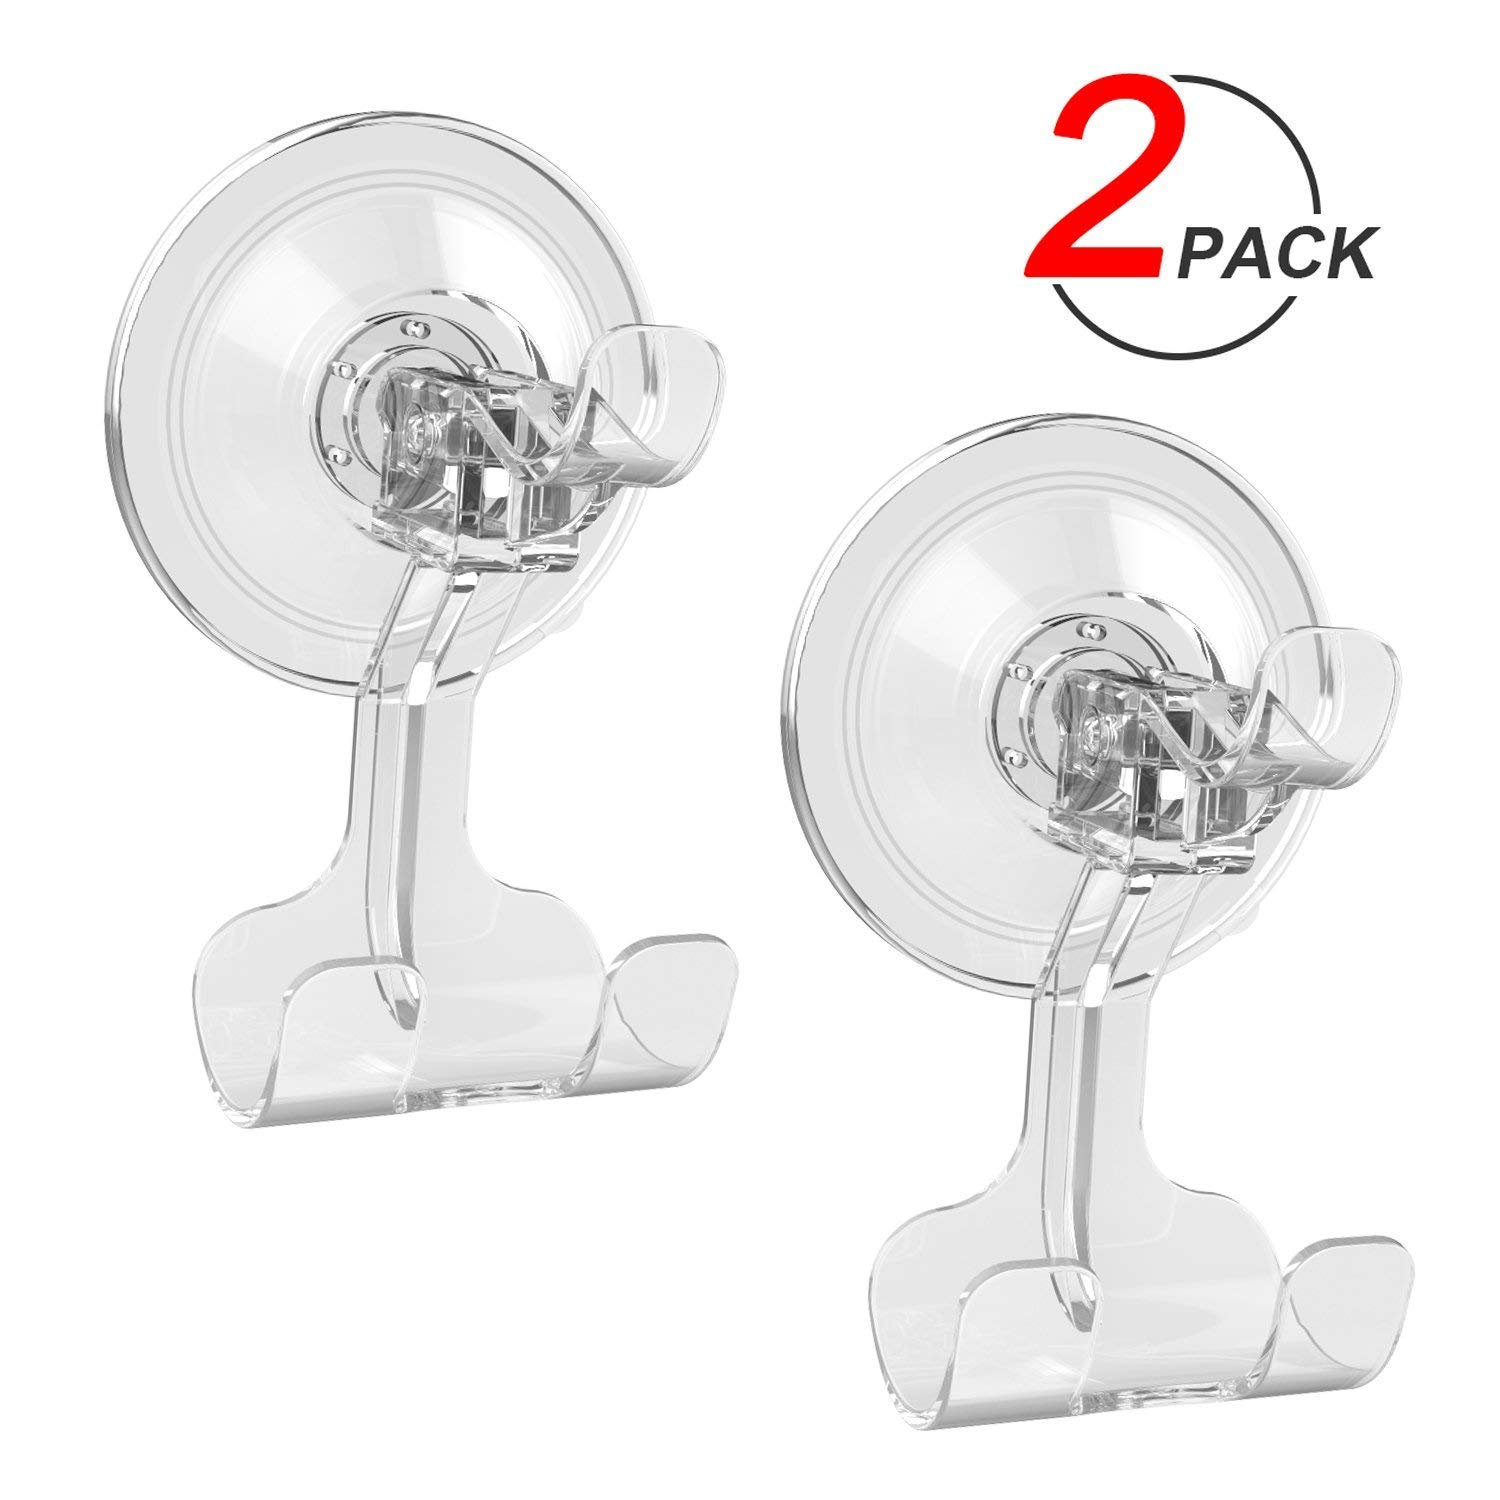 Suction Cup Hooks, Ulinek Heavy Duty 6 Pack Bathroom Kitchen Shower Wall Door Window Glass Suckers for Hanging Coat Key Towel Tool Robe Hat Handbag Removable Hanger Holder Large Powerful Lock, Max 5KG